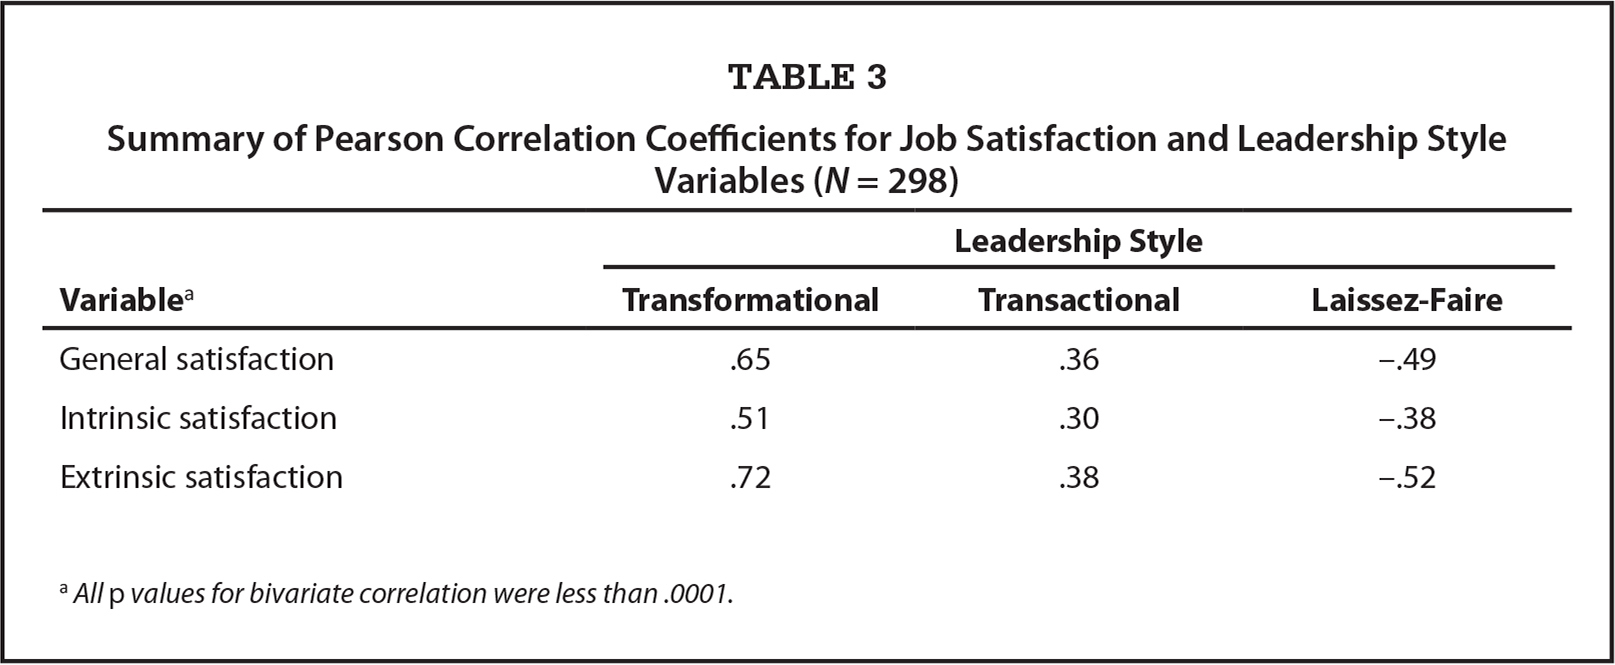 Summary of Pearson Correlation Coefficients for Job Satisfaction and Leadership Style Variables (N = 298)